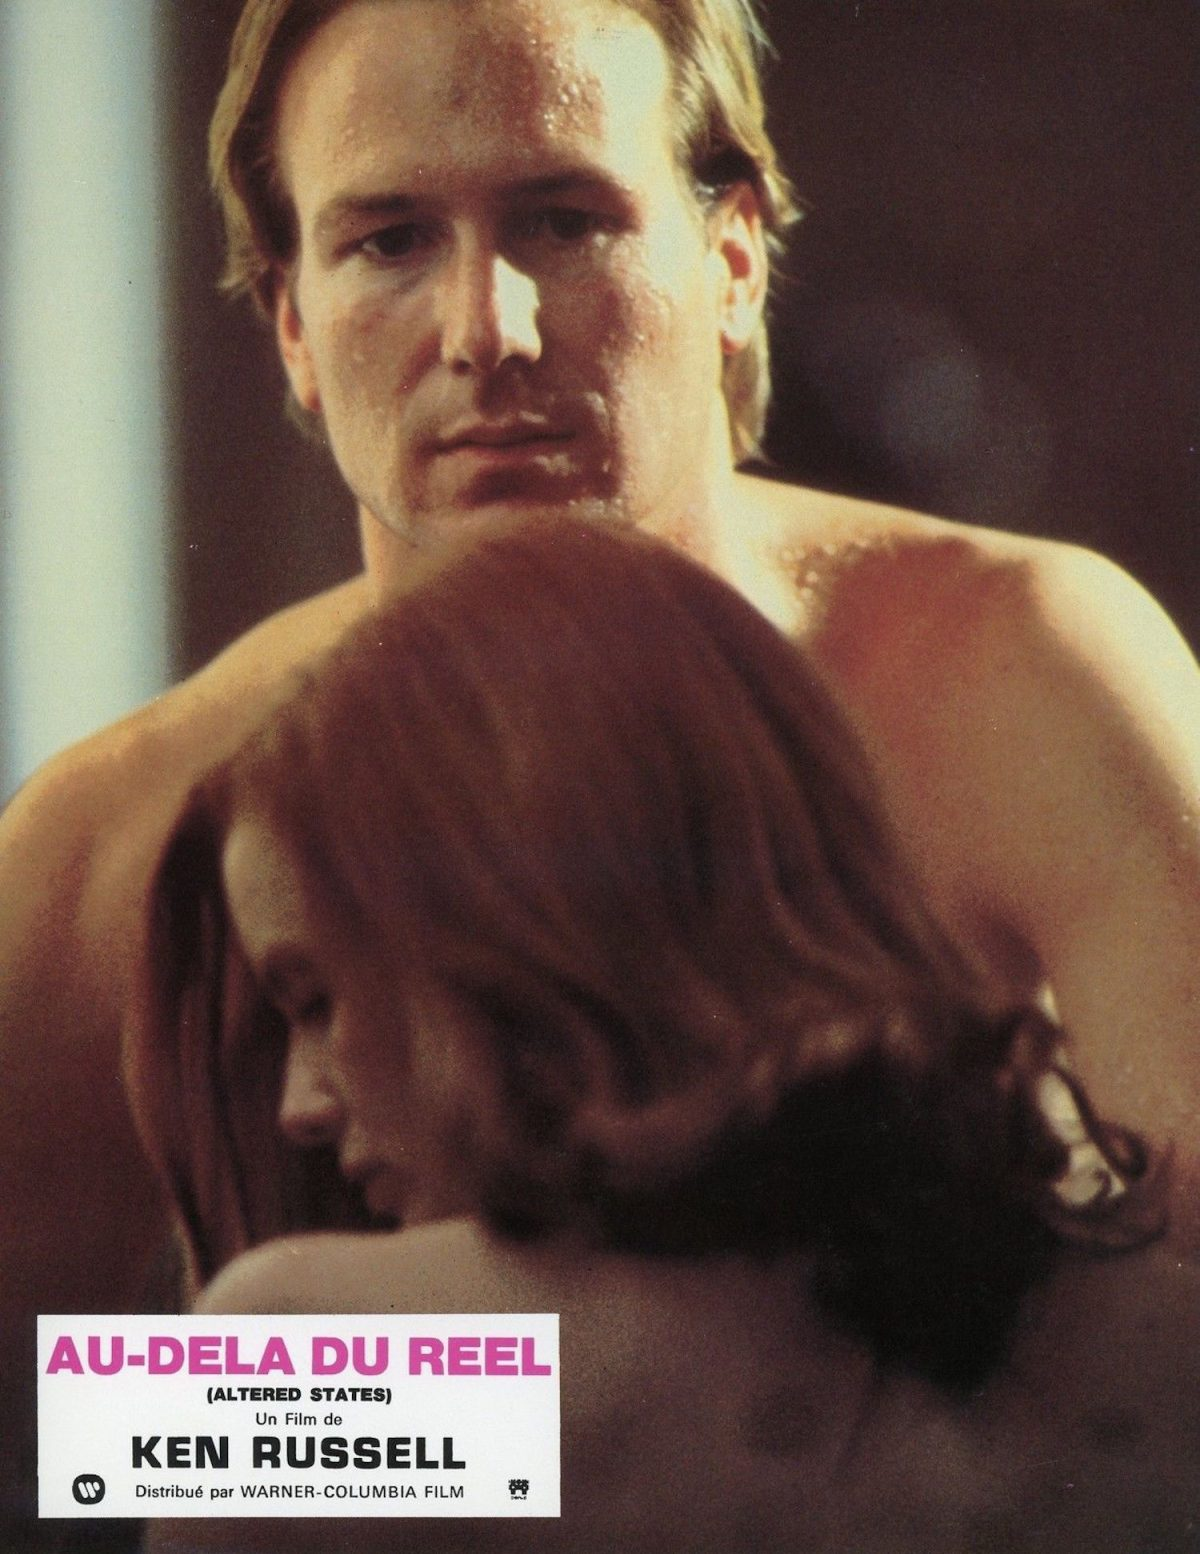 Ken Russell, Altered States, Blair Brown, William Hurt